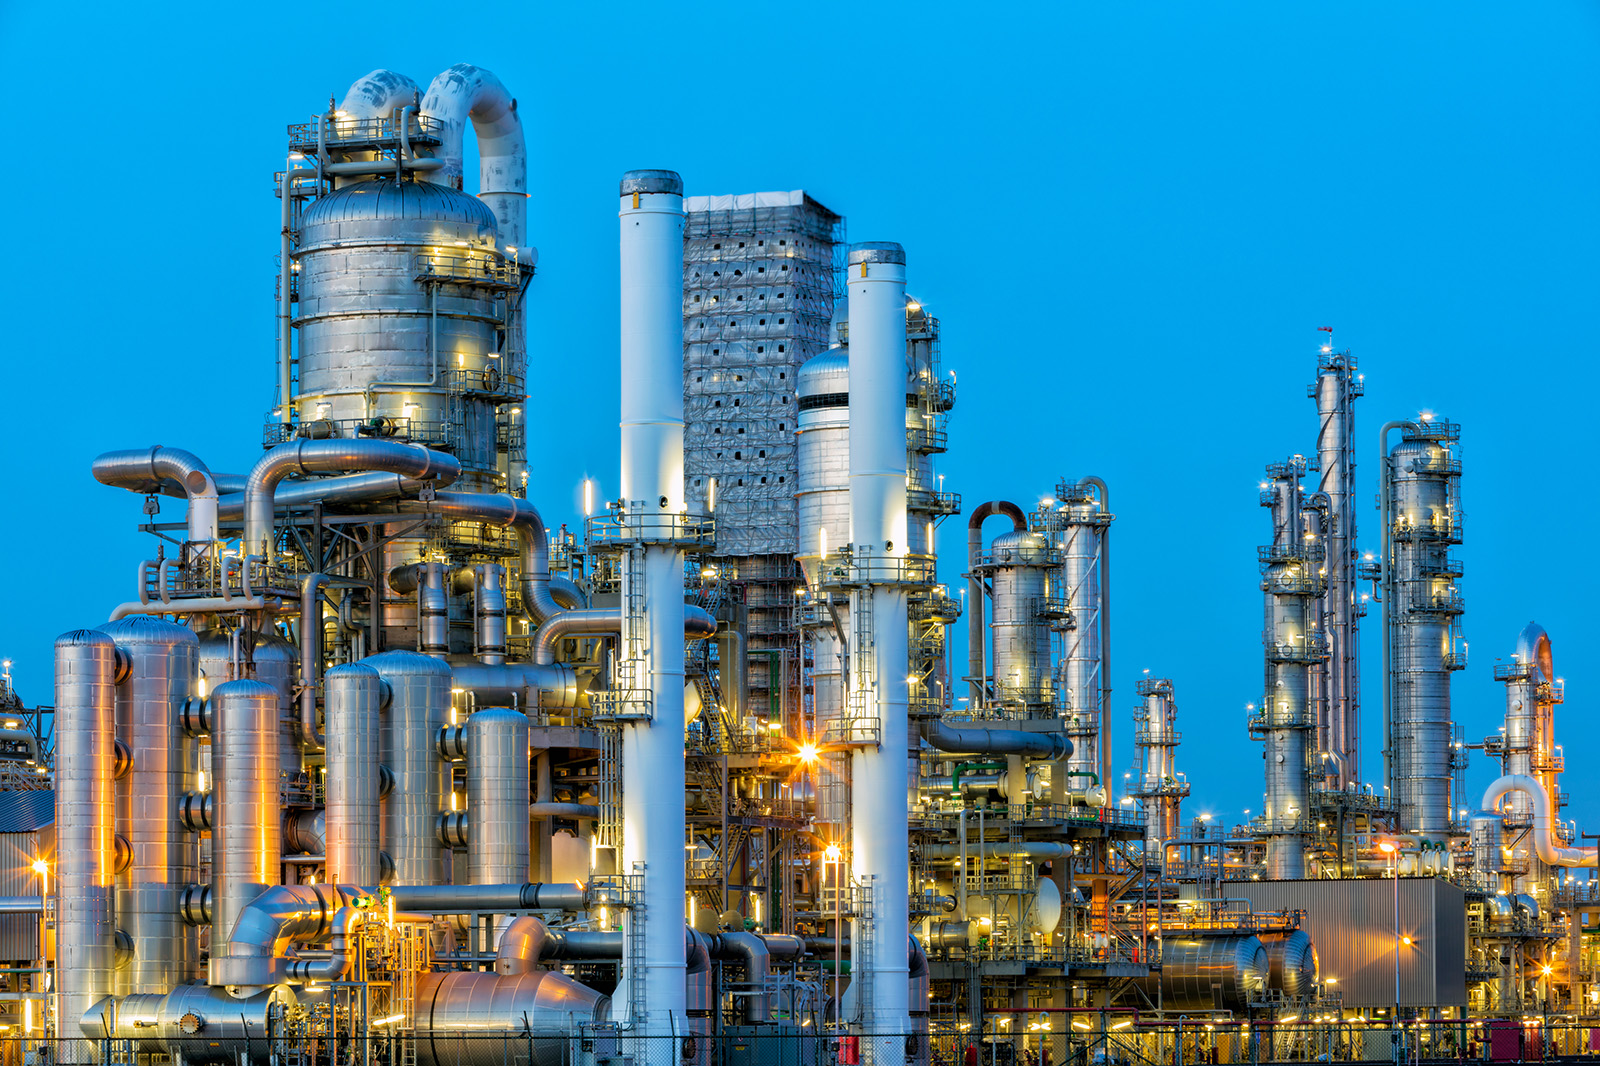 COREMTECH's SCR Catalysts in Industrial Applications